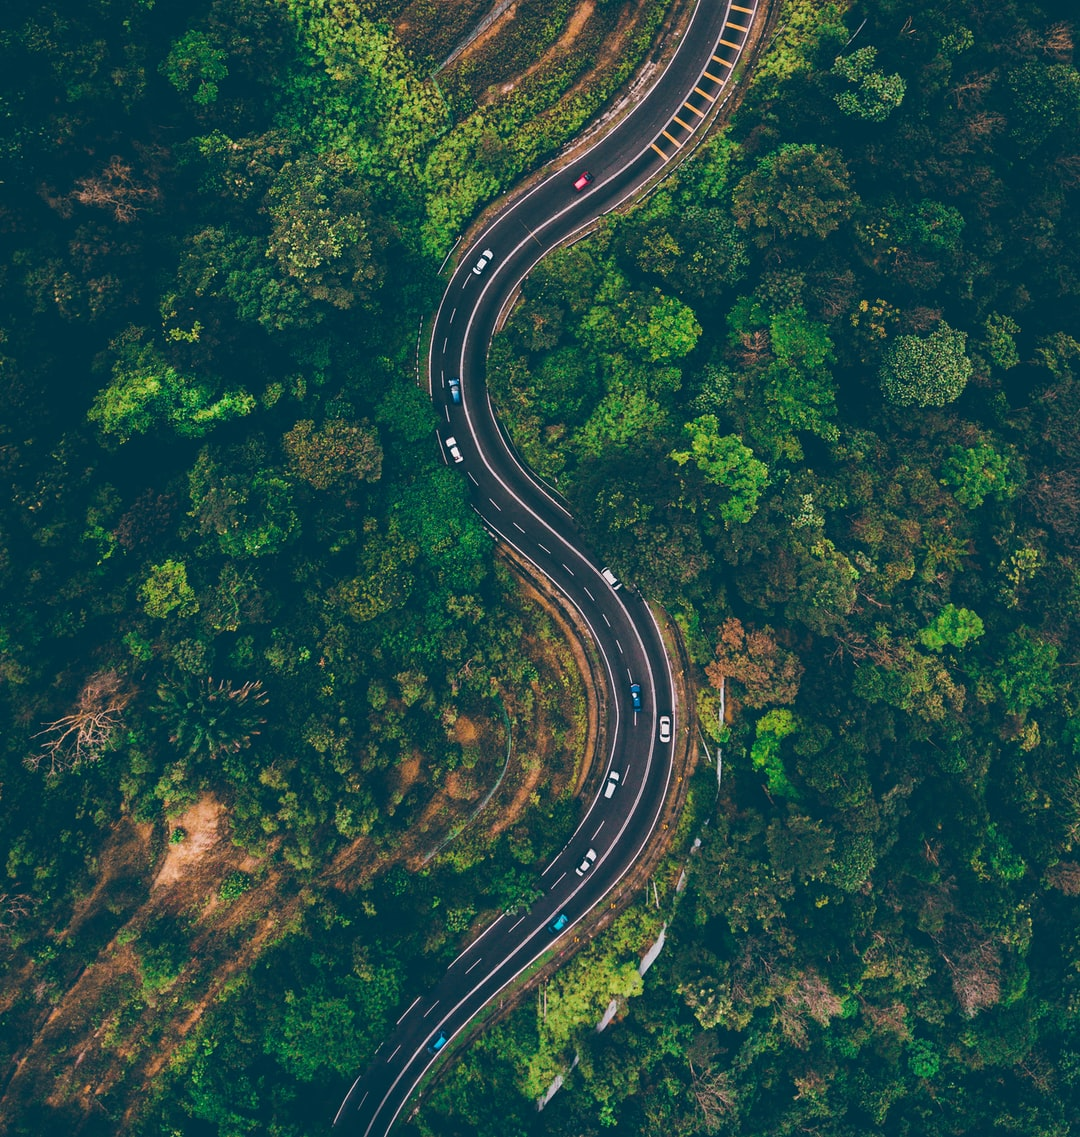 To travel to my hometown this is the way. When i was small i love this road cause it's more nature , curvy, and dangerous too. Now i grew up and to own a drone can see the beauty of the road. I look at the road from aerial view why not, I create a alphabet composition  photography. My first image was The X highway drone shot.